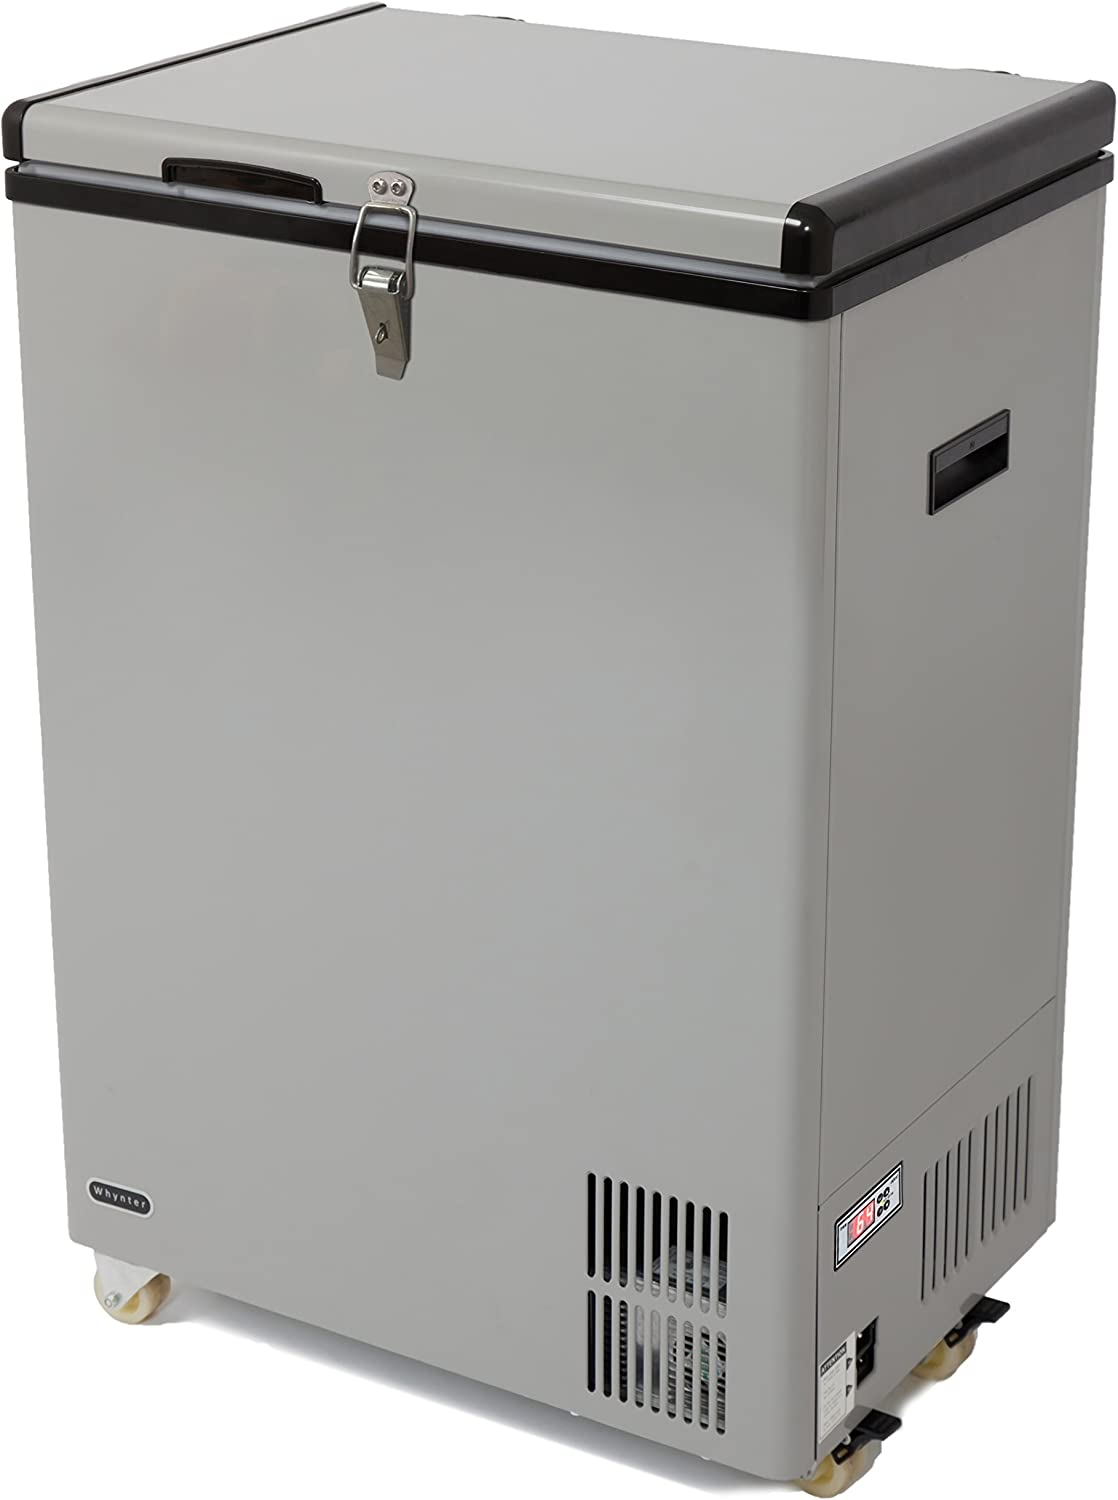 71GvUsVf73L. AC SL1500 The Six Best Chest Freezers for Garage for 2021 (Review)